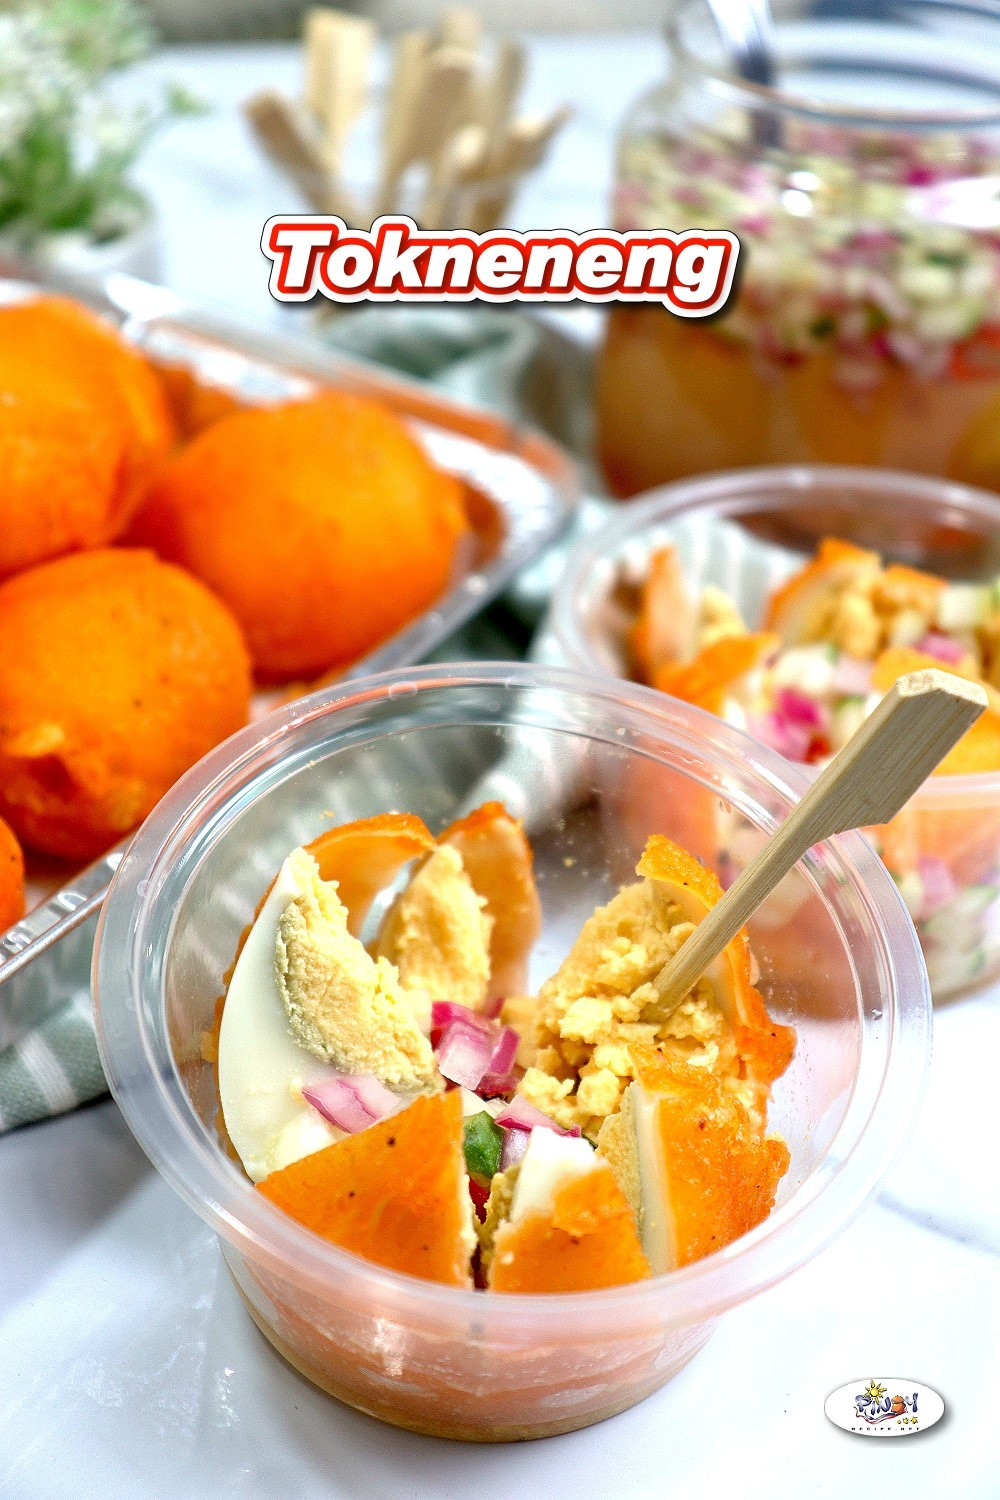 Tokneneng Recipe is a delicious Filipino street food.